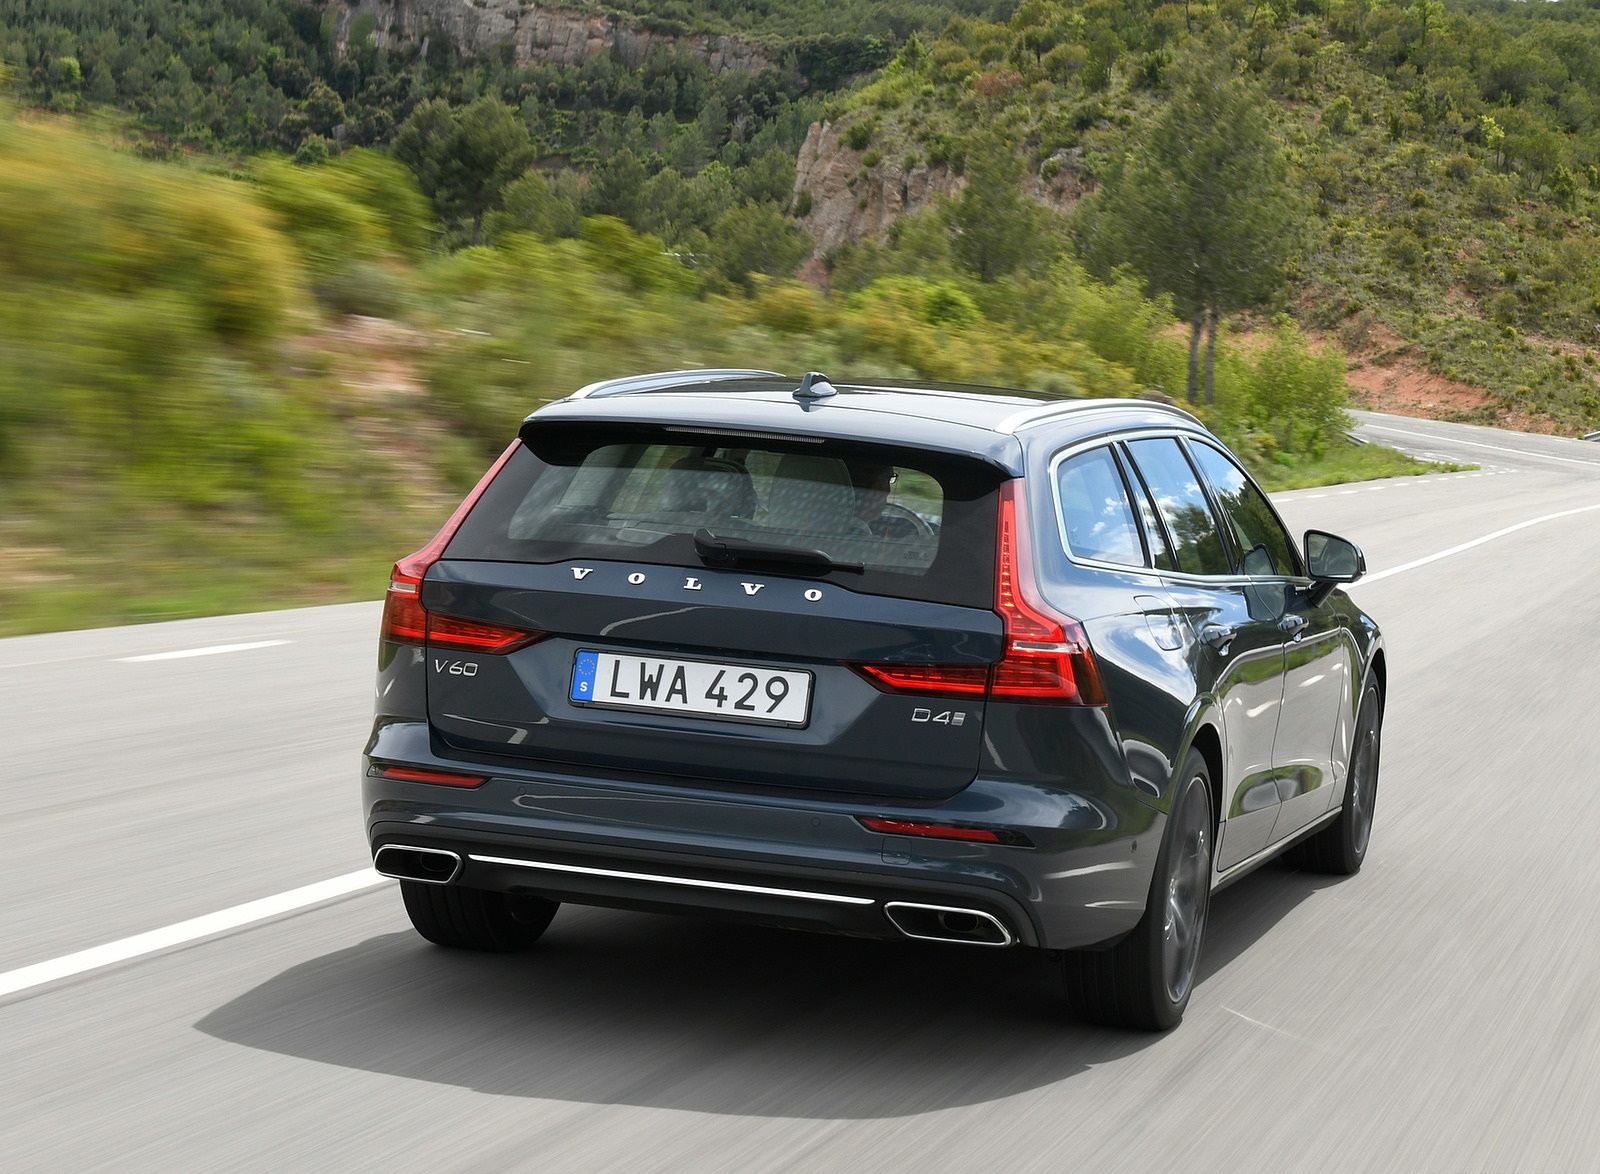 2019 Volvo V60 Rear Wallpaper (5)